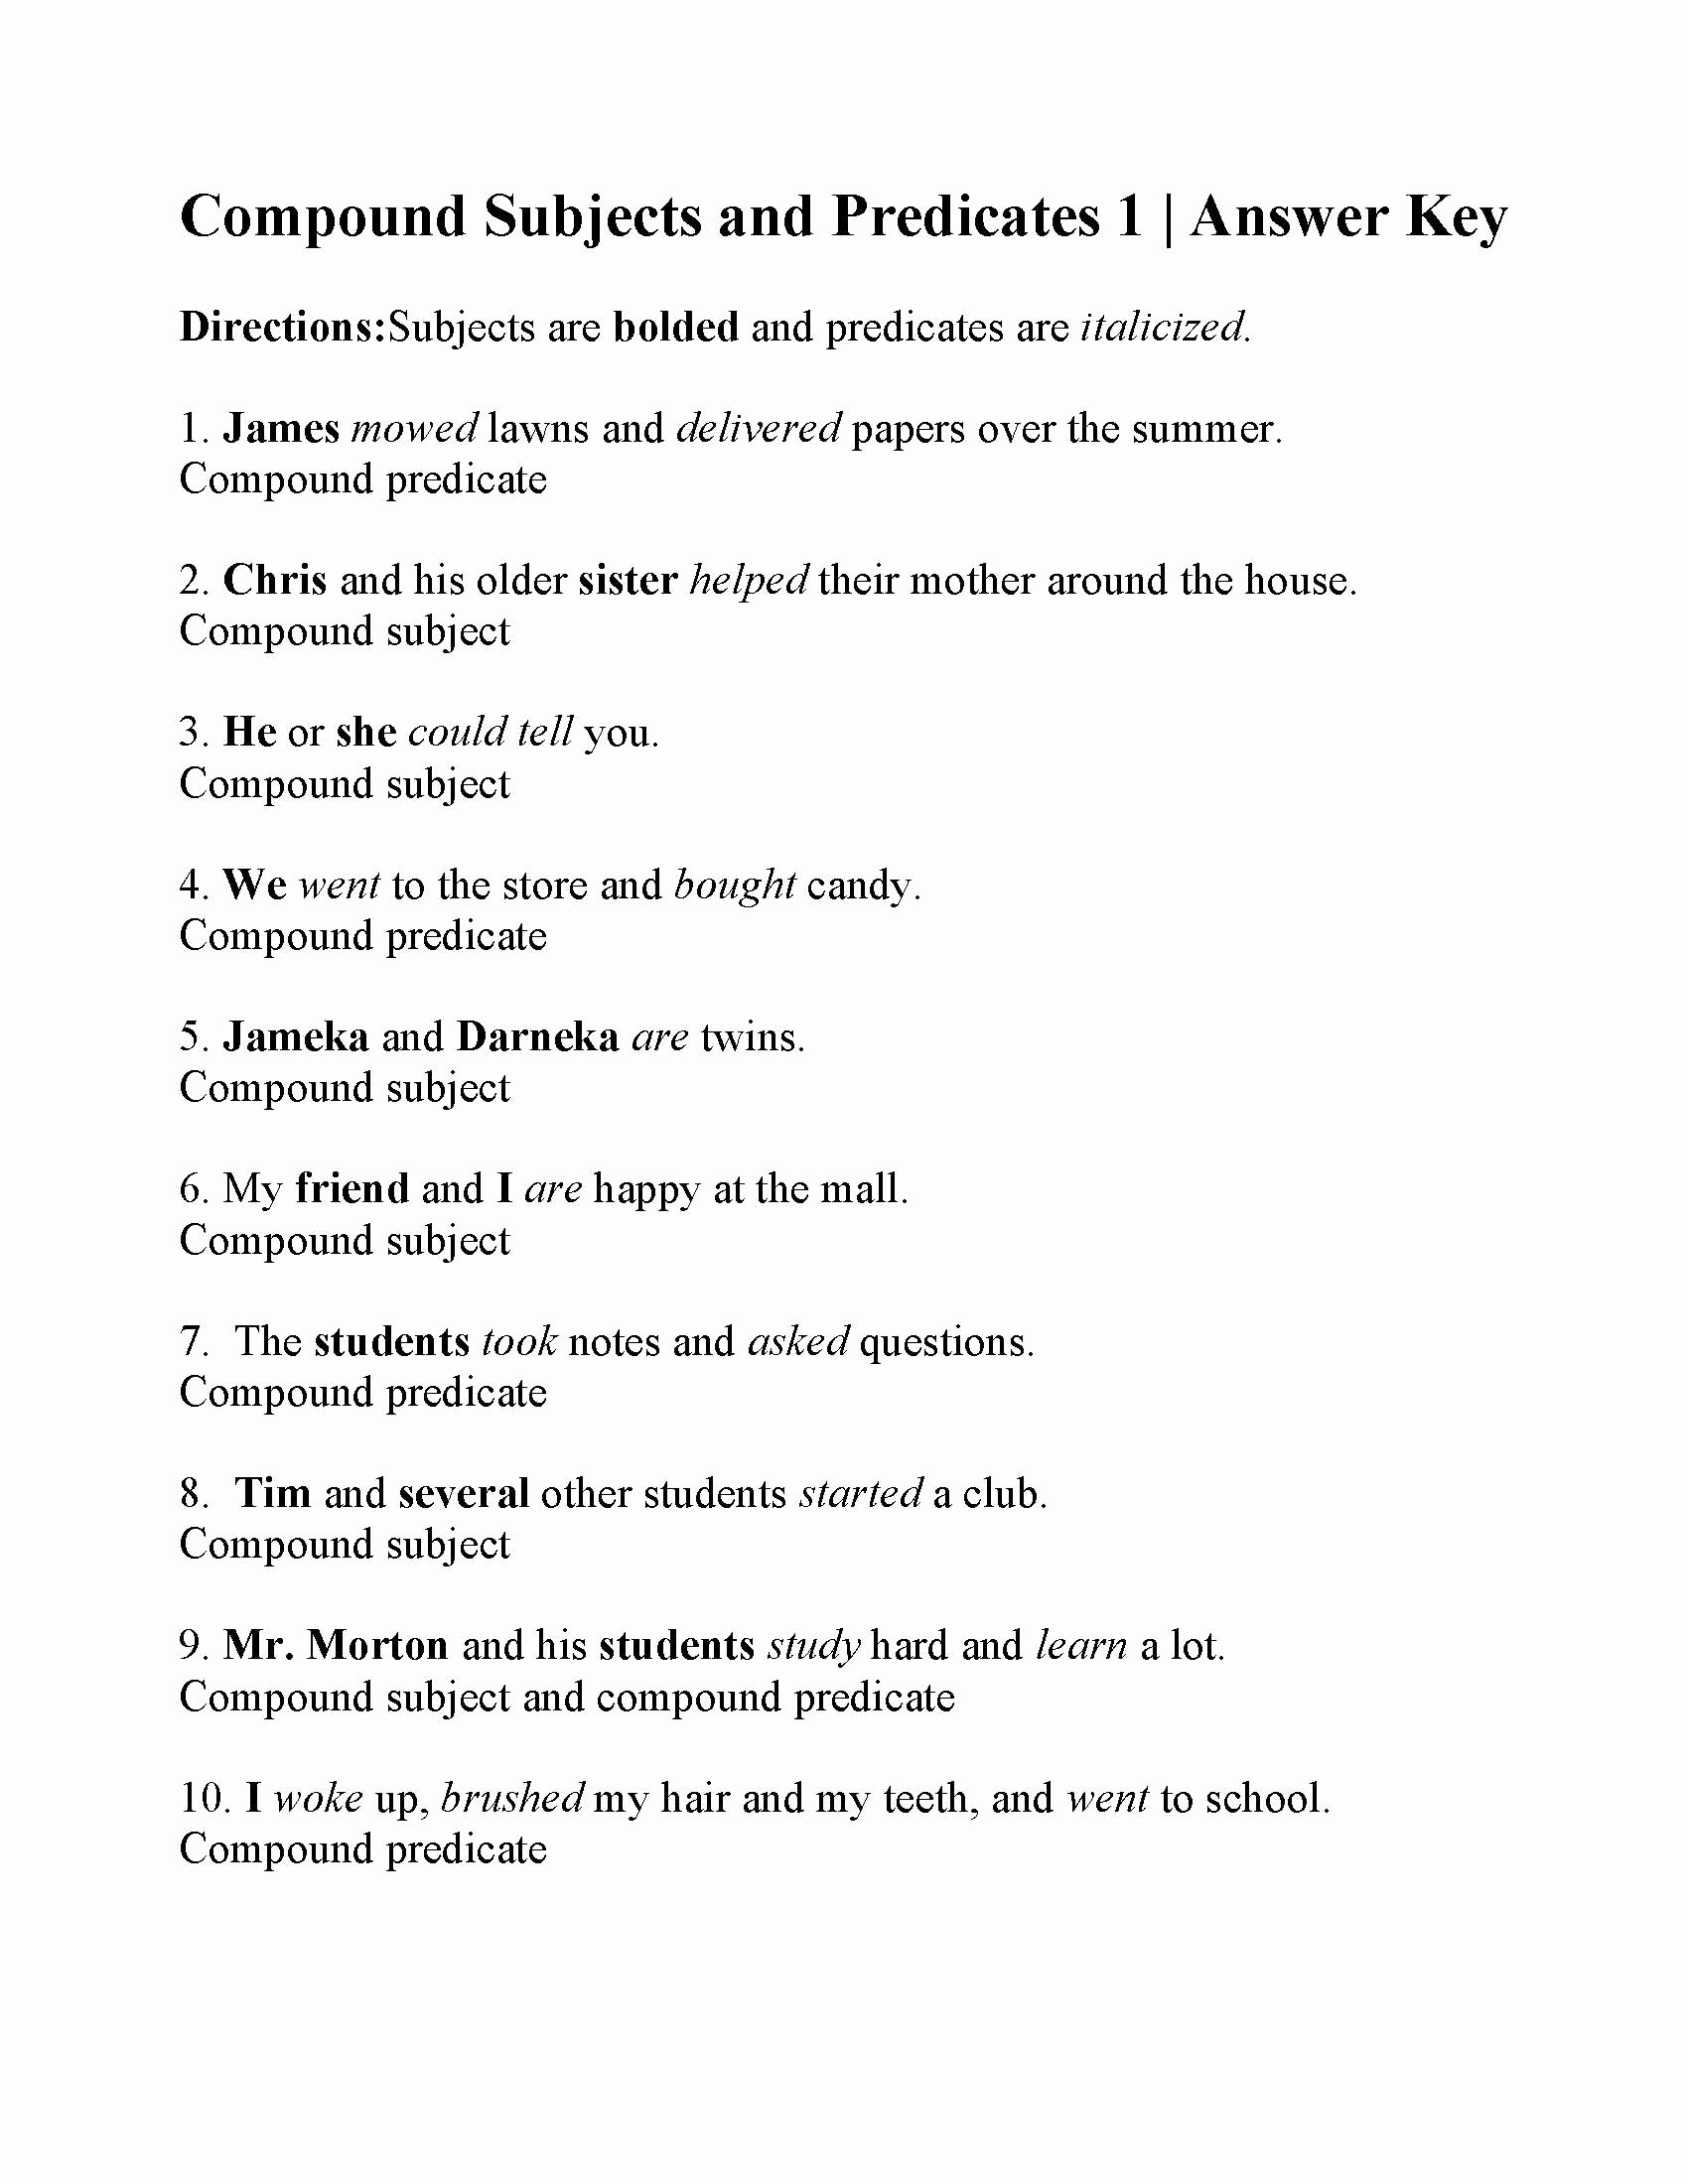 Free Subject and Predicate Worksheets top Pound Subjects and Predicates Worksheet